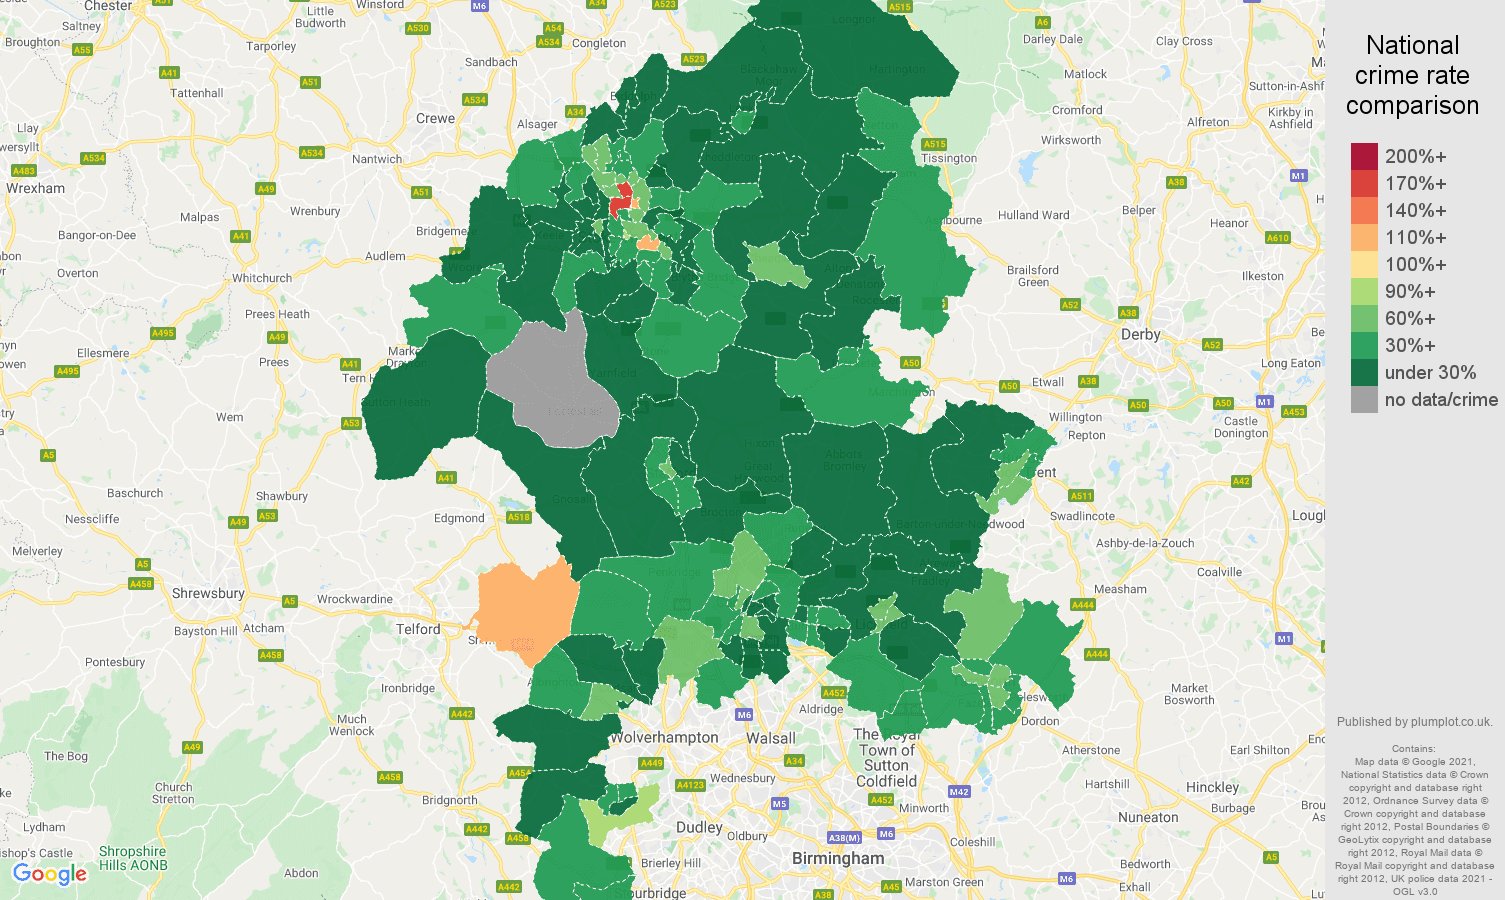 Staffordshire drugs crime rate comparison map